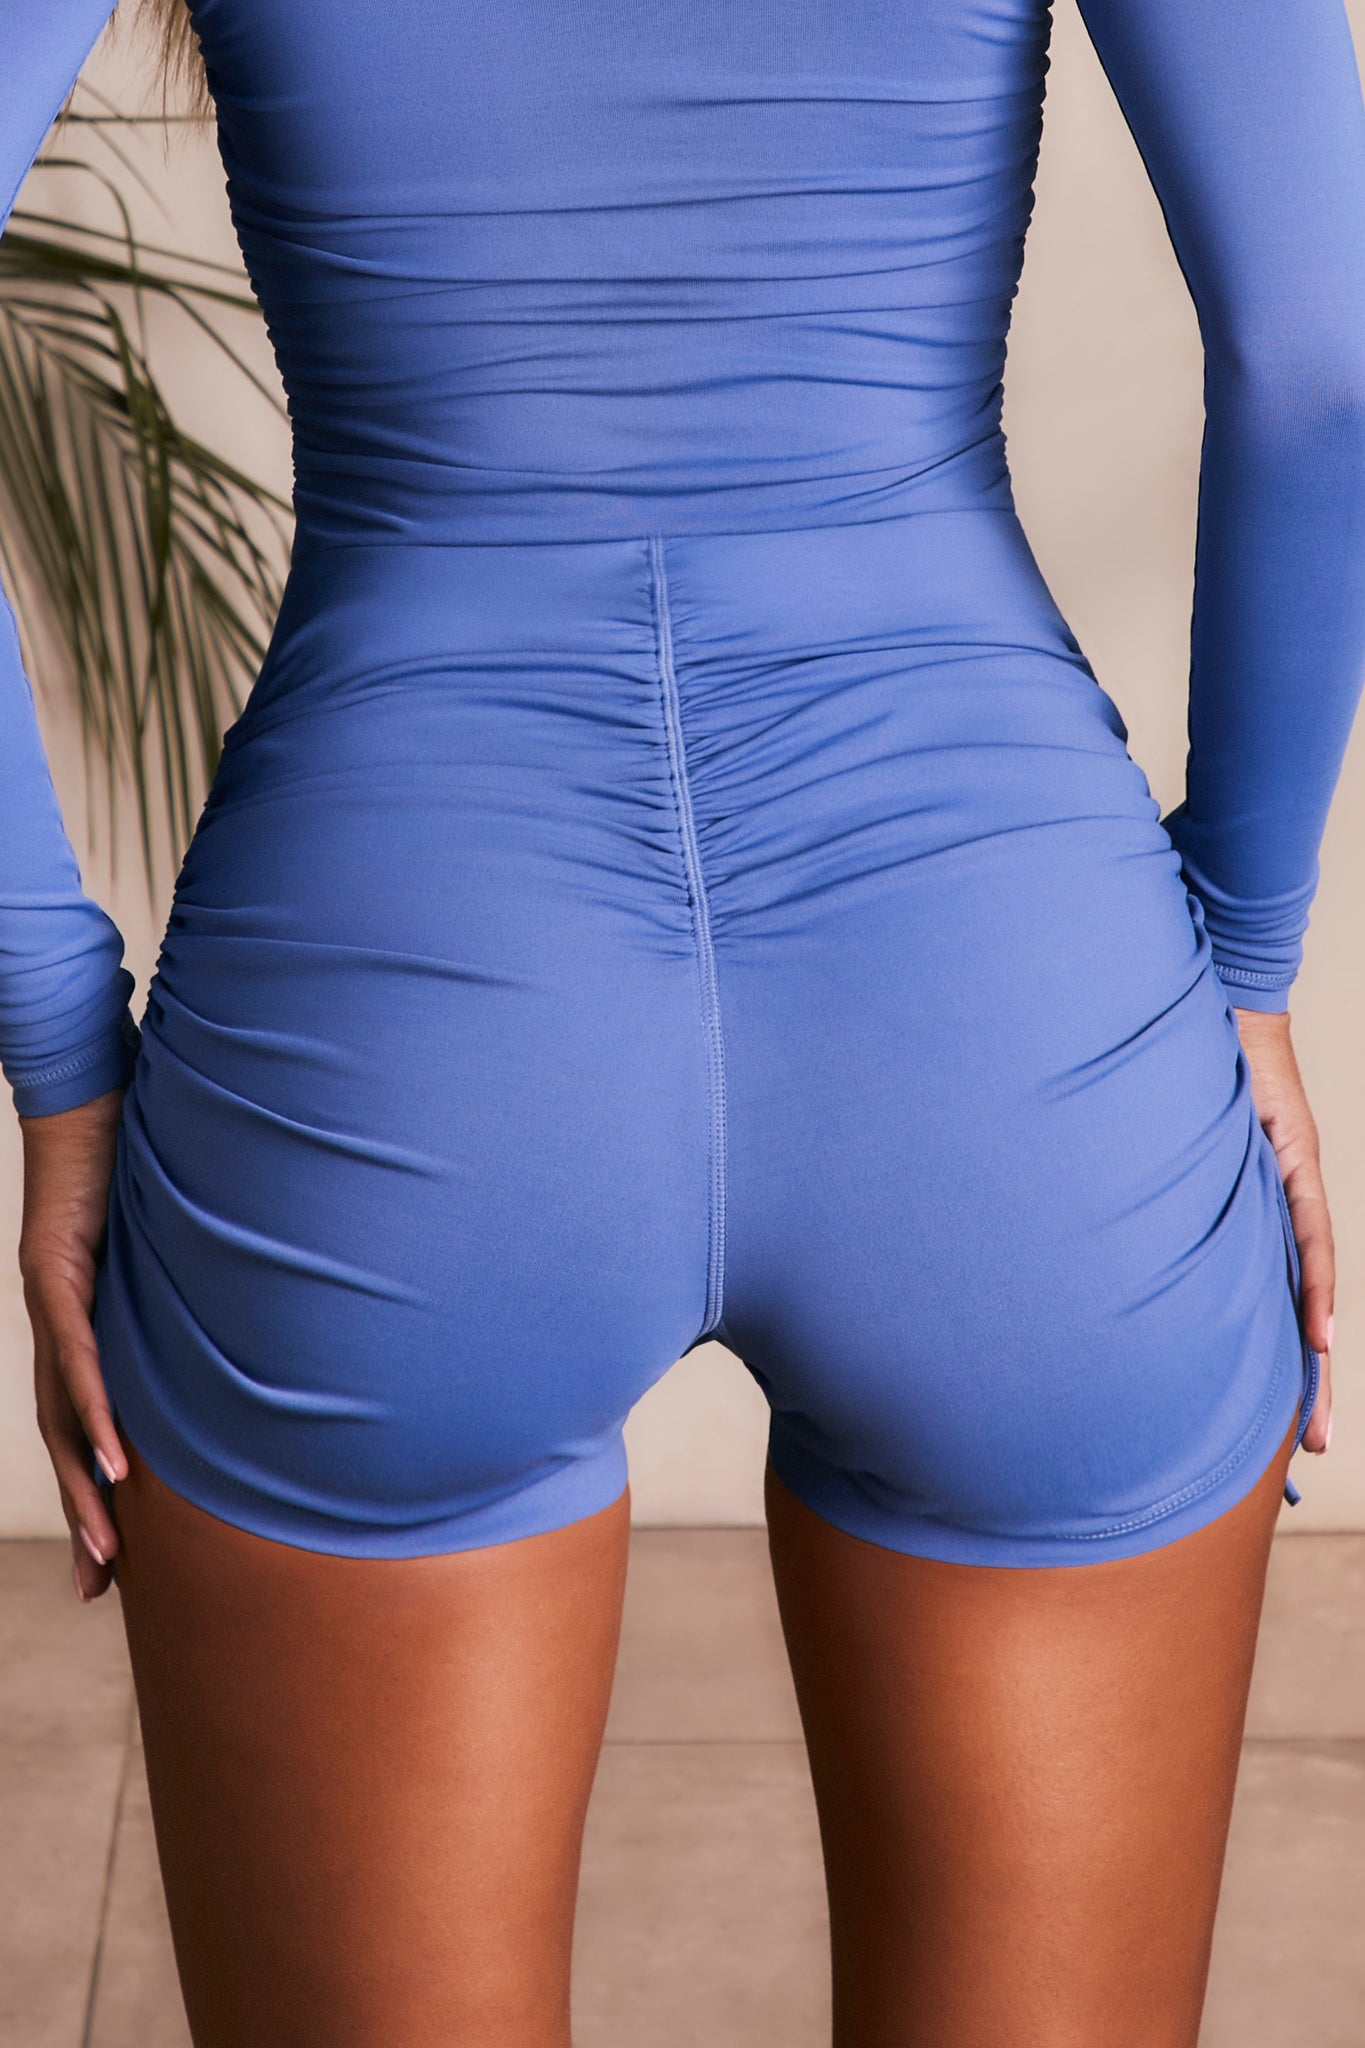 Slinky long sleeve unitard in blue violet with ruched rear. Image 3 of 6.